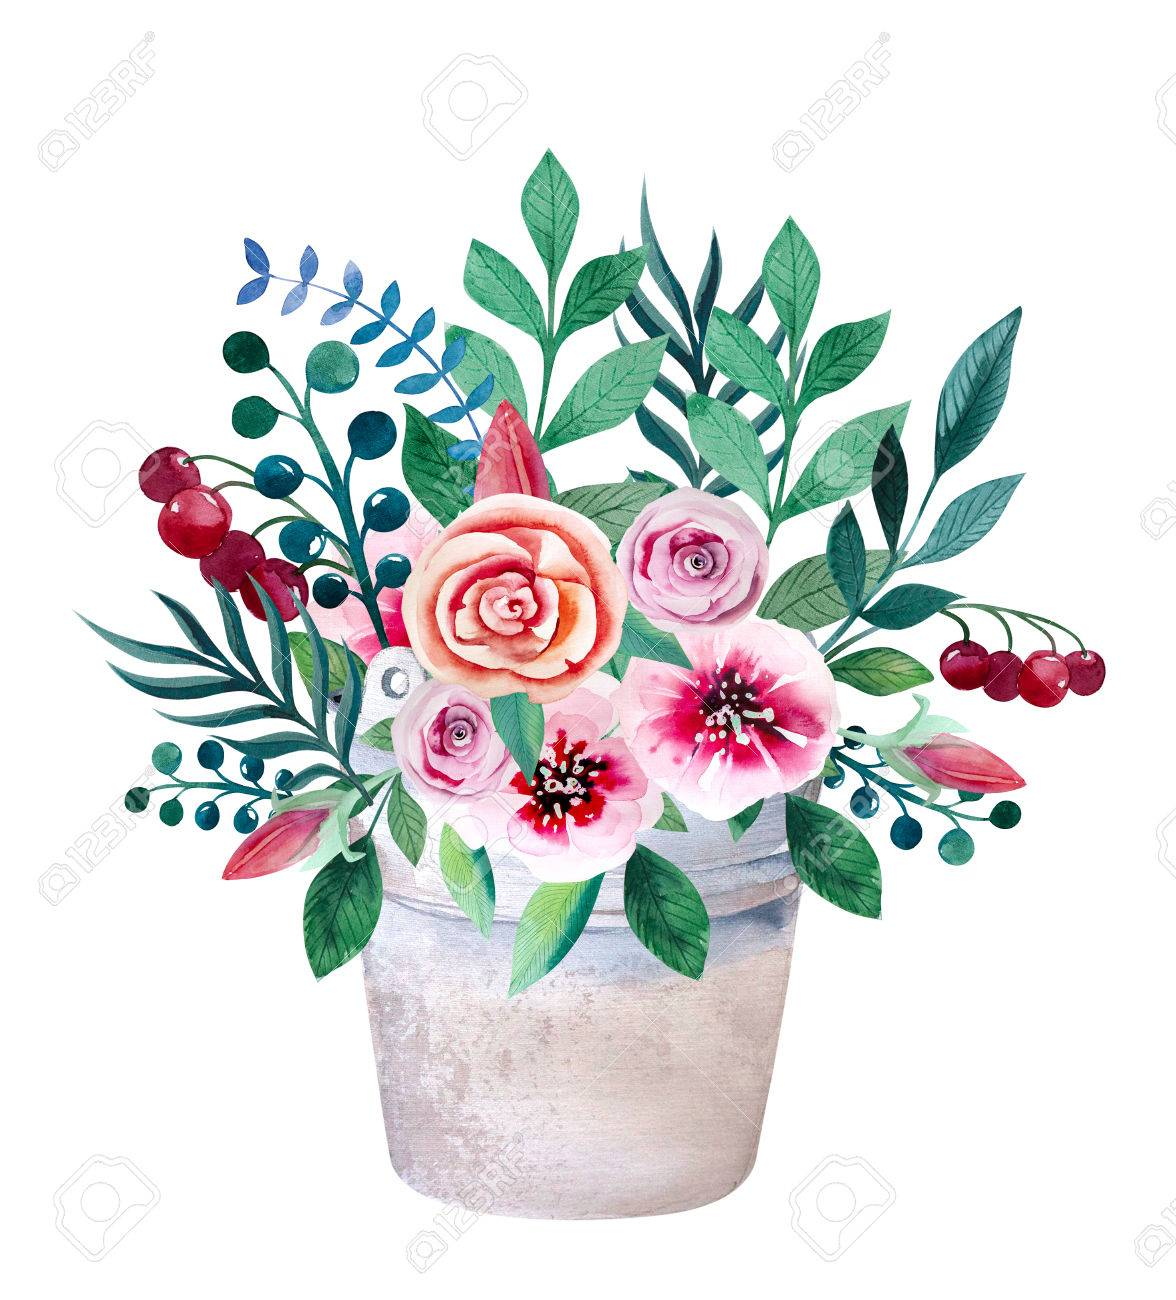 Watercolor Bouquets Of Flowers In Pot. Rustic Floral Set In Shabby ...